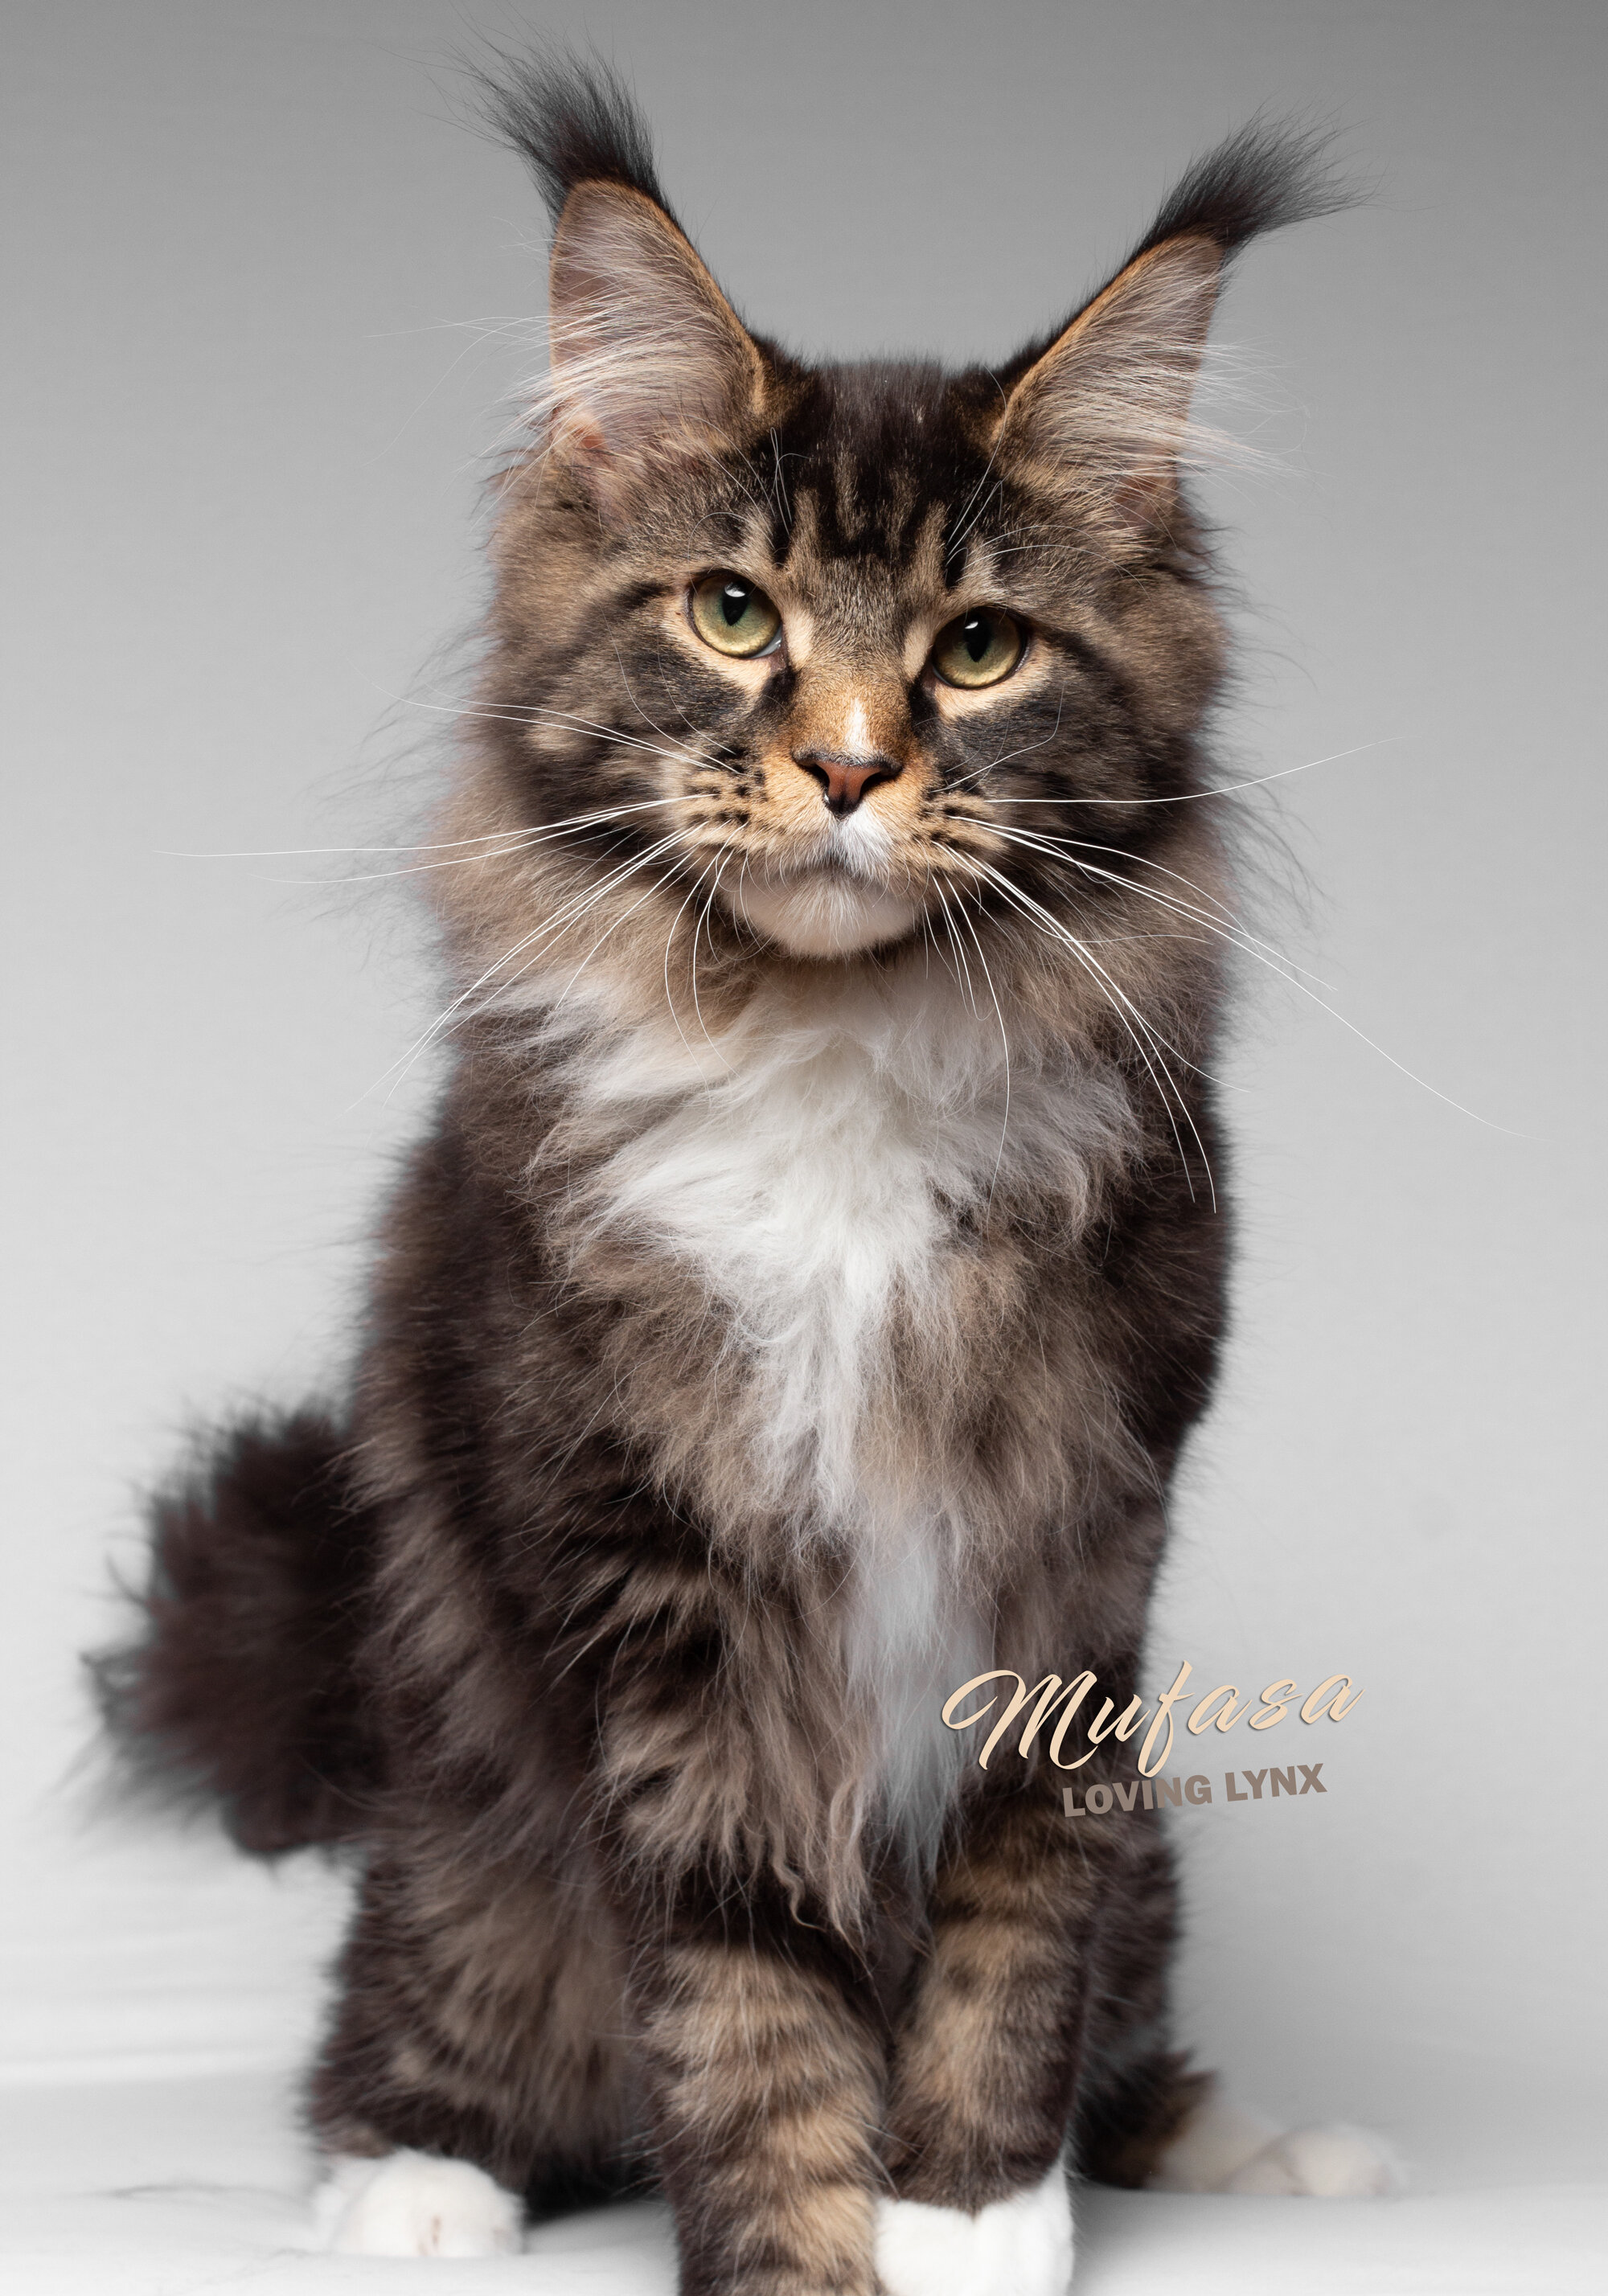 Maine Coon Cats For Sale In Iowa : maine, Maine, Breeders, LOVING